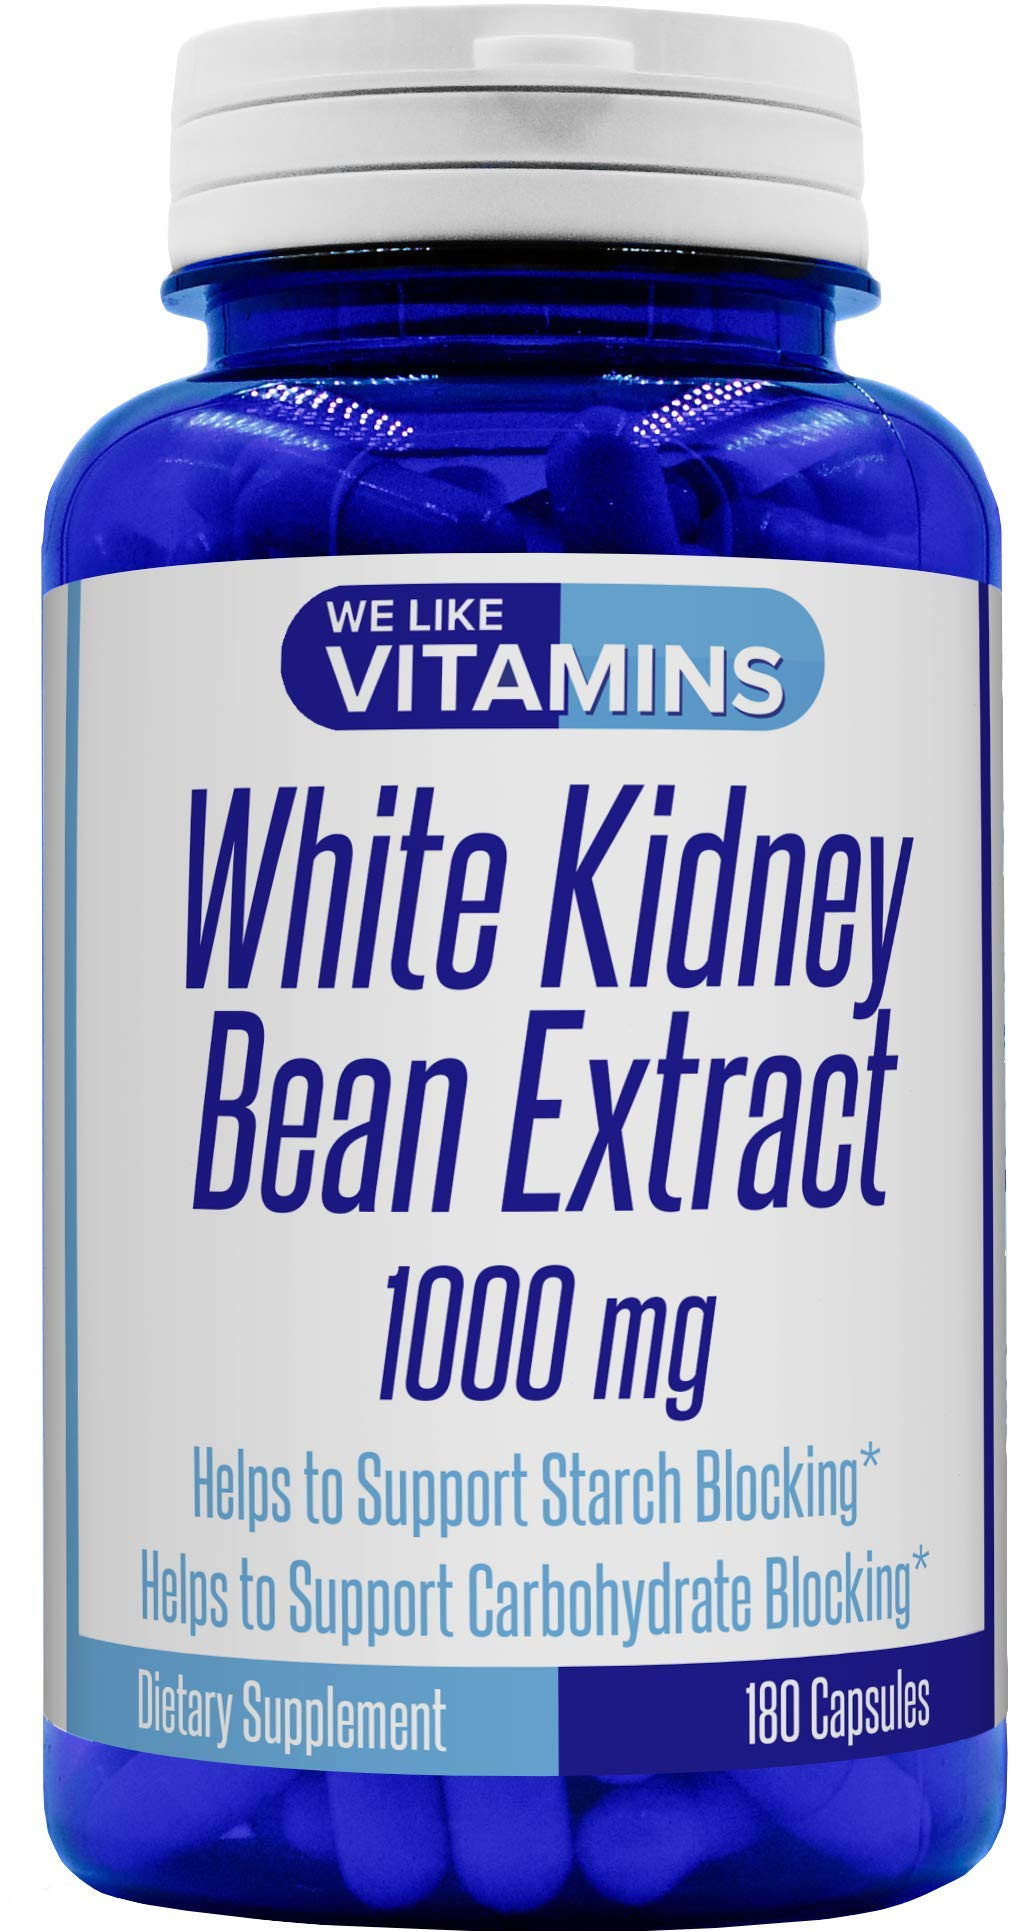 White Kidney Bean 1000mg - 180 Capsules (Non GMO & Gluten Free) - White Kidney Bean Supplement - Helps to Support Carbohydrate and Starch Blocking for Healthy Weight